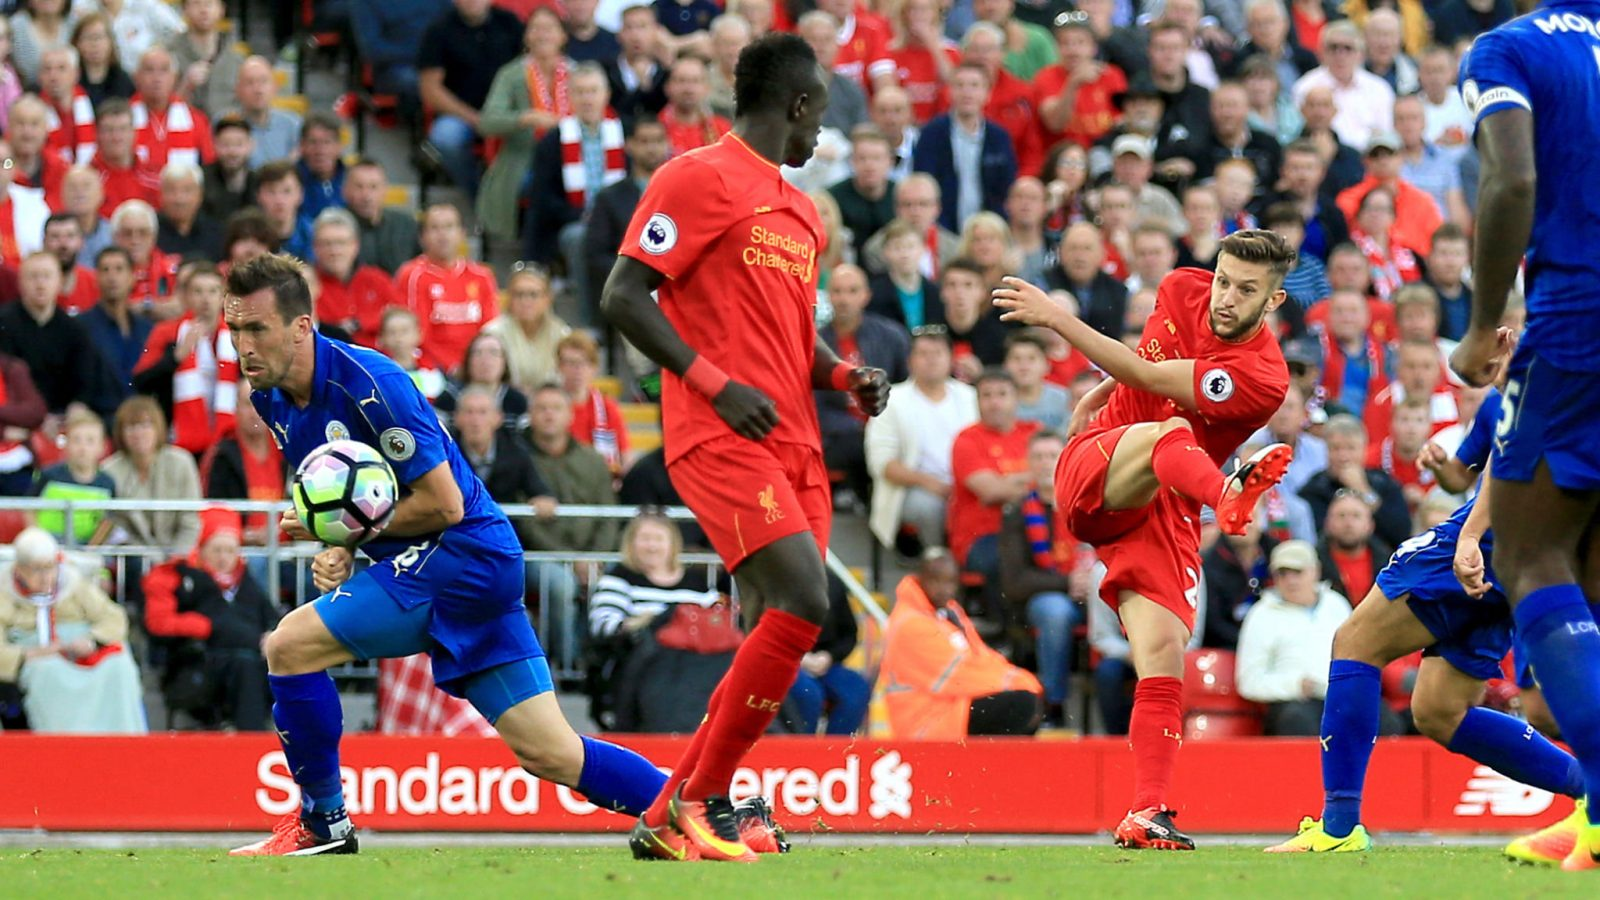 Liverpool - Leicester City 4:1